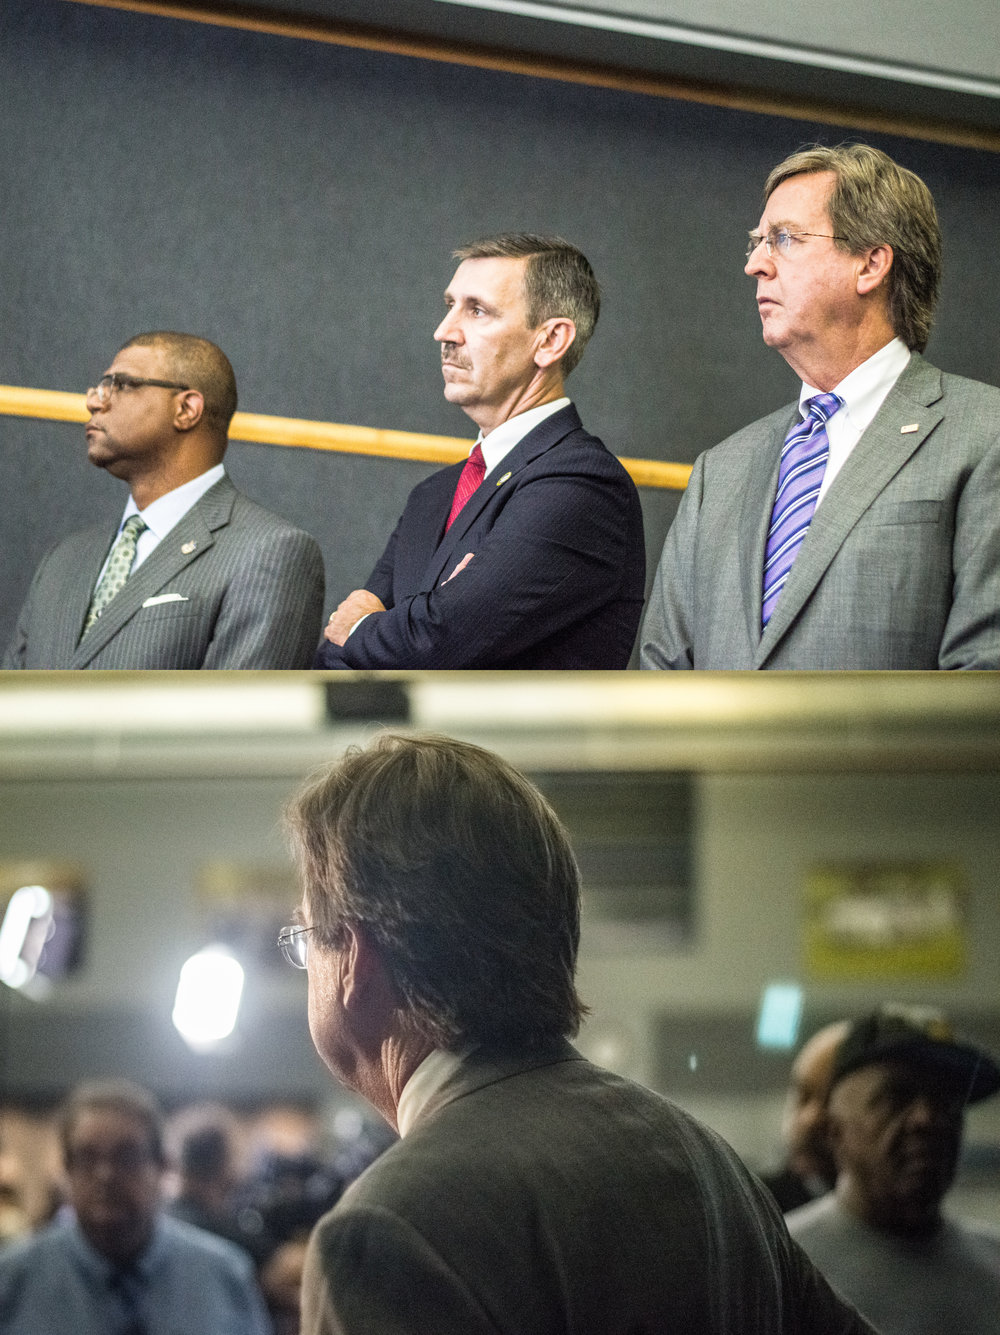 September 19. 1:52 P.M.    (TOP)  Tulsa County District Attorney Steve Kunzweiler (Center) and Tulsa Mayor Dewey F. Bartlett (Right) at a press Conference held by Tulsa County Officials 3 days after the Death of Terence Crutcher.  (Bottom)  Mayor Bartlett leaving the press Conference.